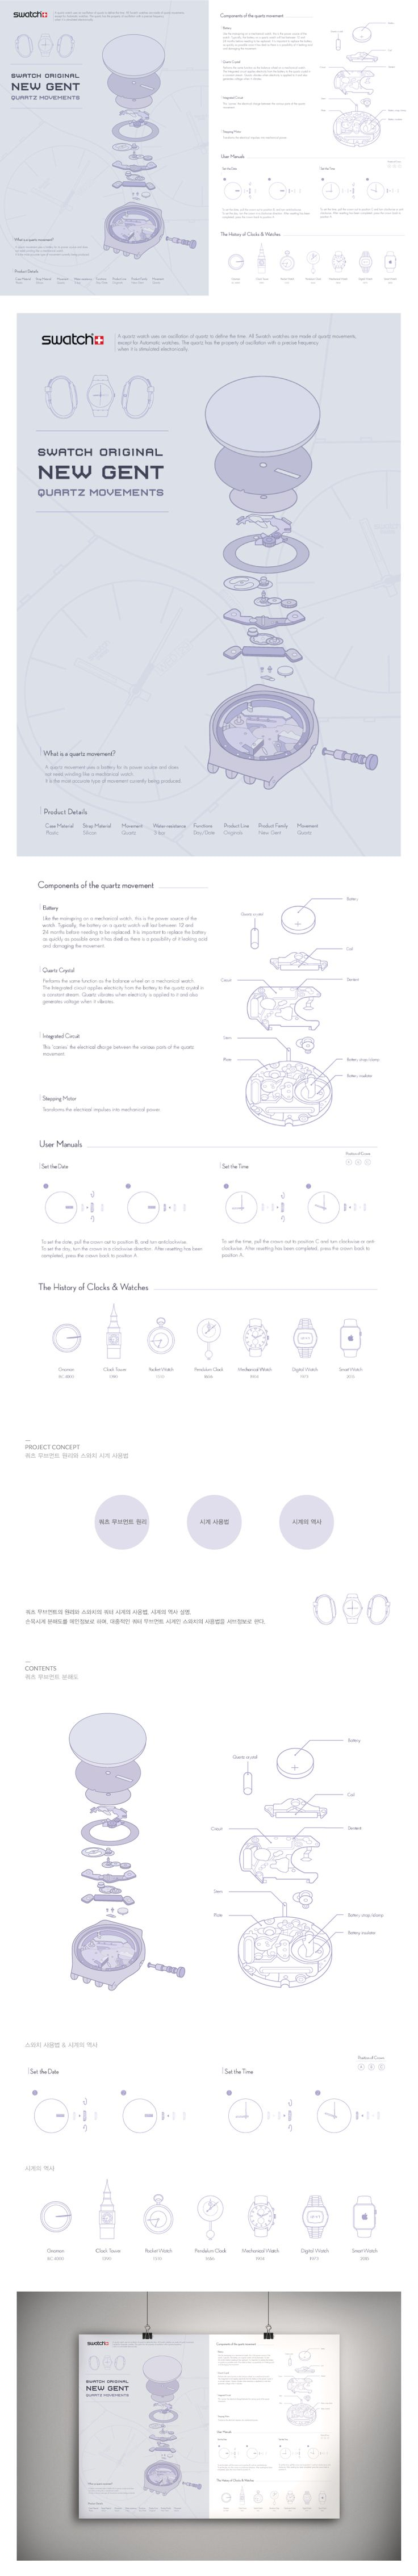 Kim Jaewon│ Information Design 2015│ Major in Digital Media Design │#hicoda │hicoda.hongik.ac.kr